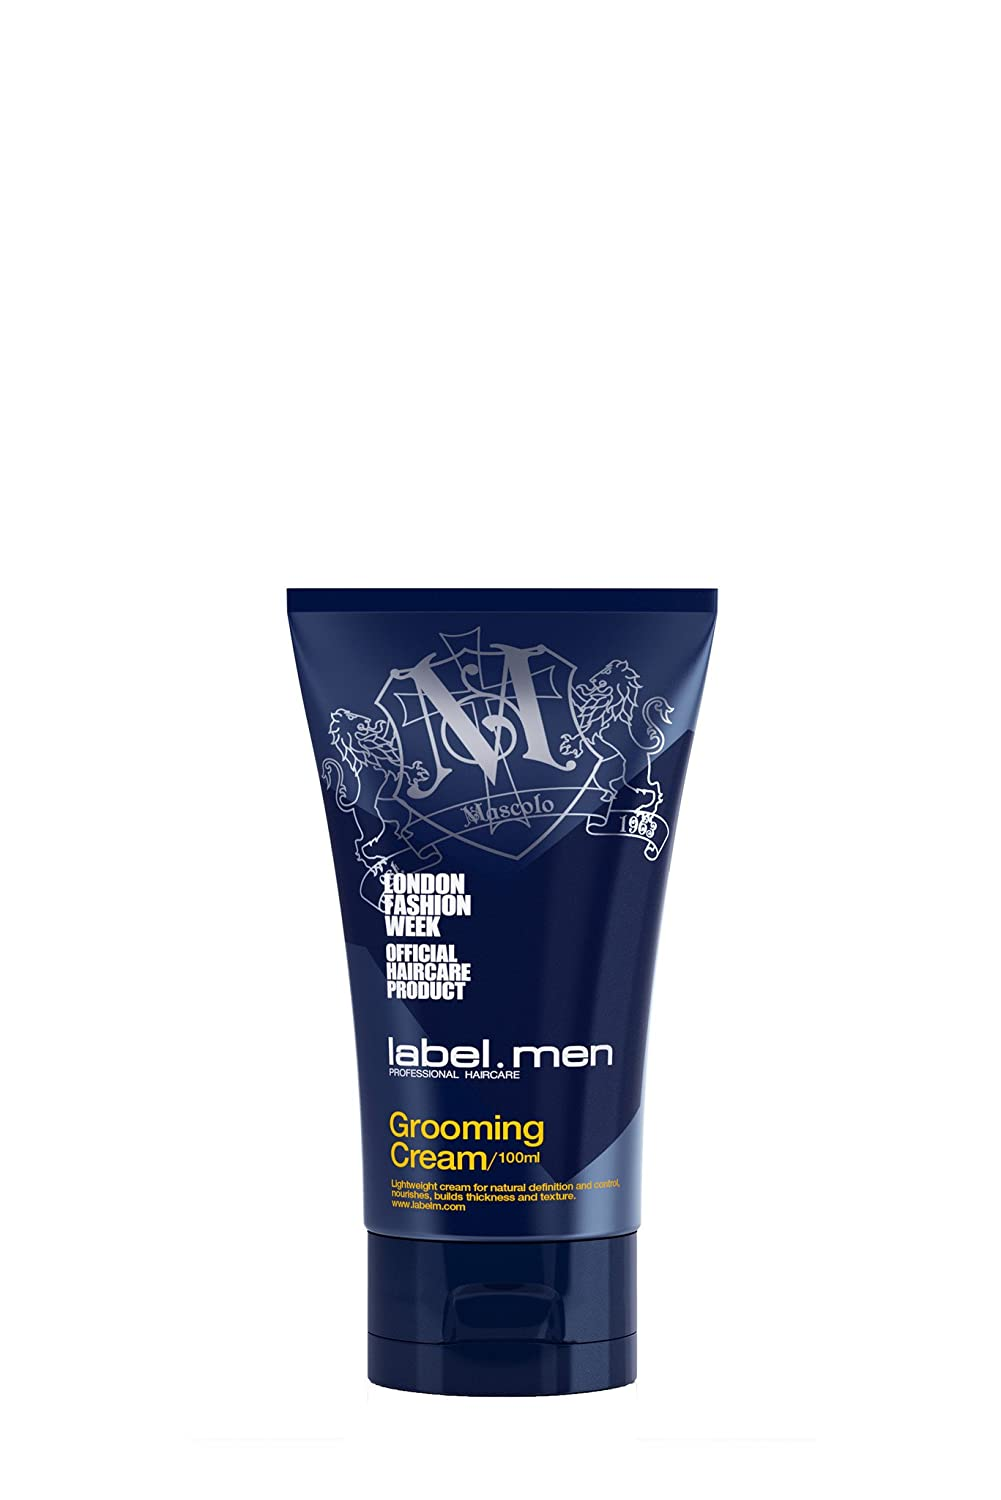 Label M Men's Grooming Cream (Lightweight Cream, Natural Definition and Control, Nourishes, Builds Thickness and Texture) 100ml/3.4oz Label.m GTP138656